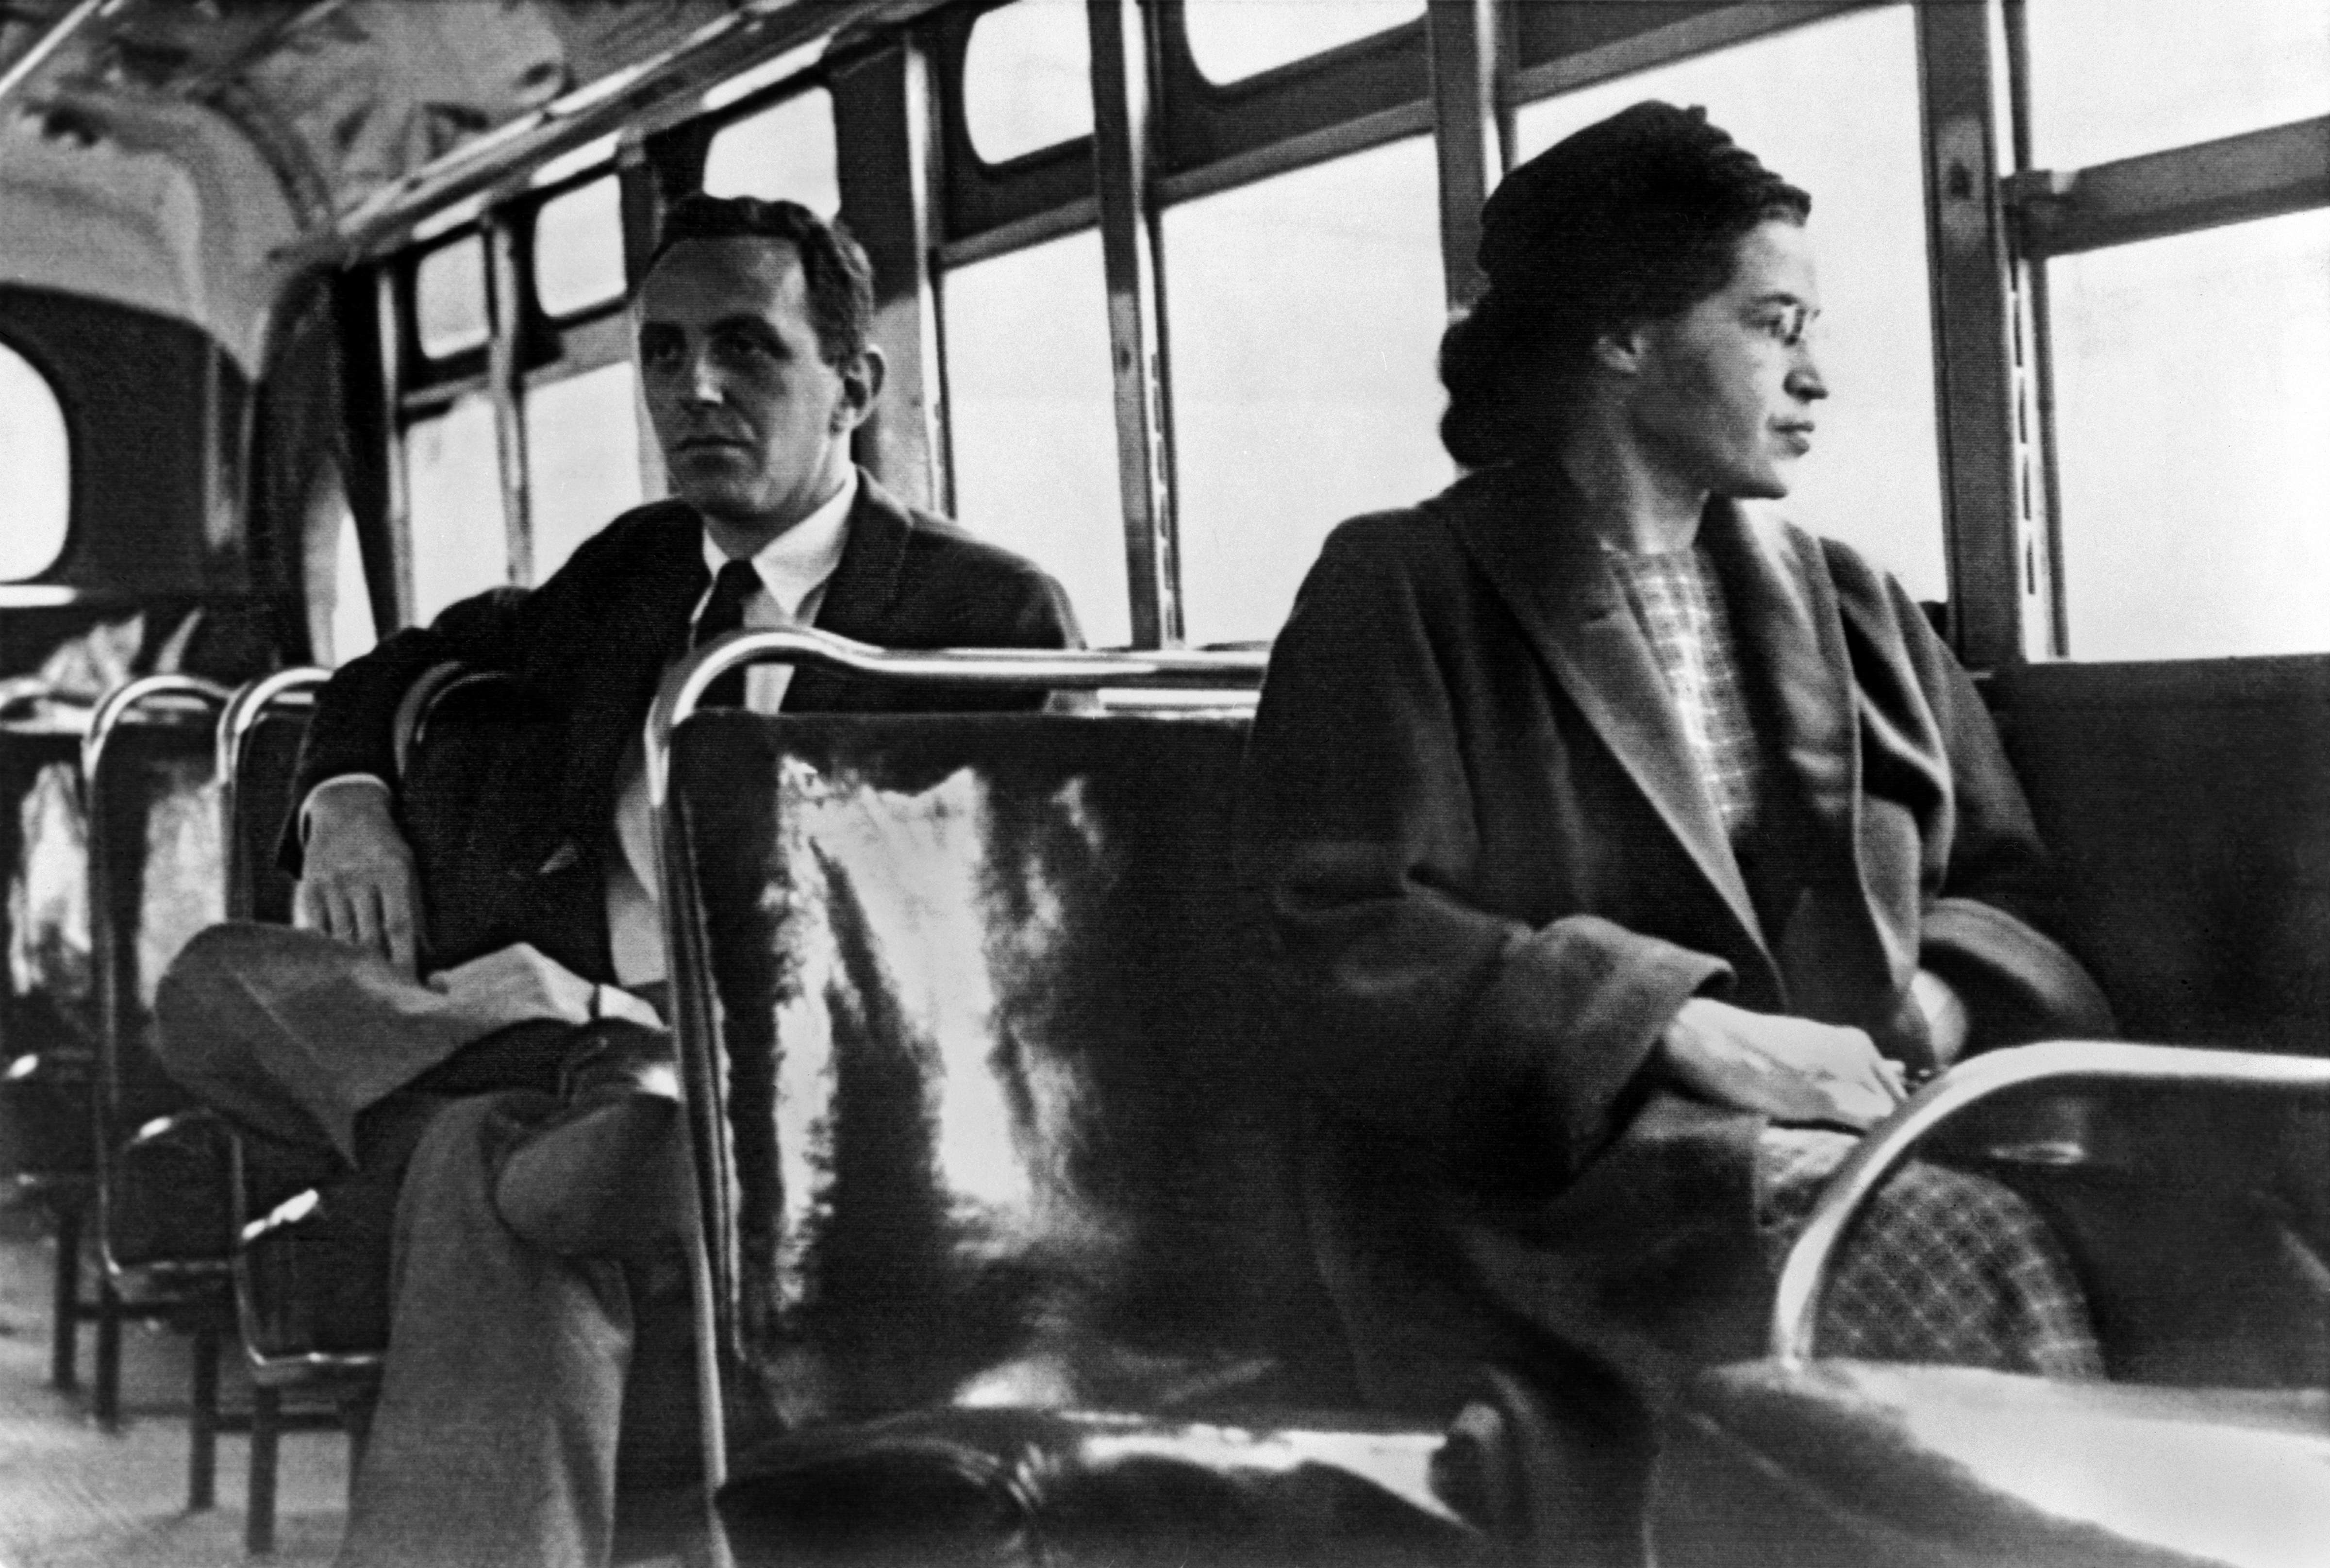 Civil Rights Activists: A key figure of the Civil Rights Movement, Rosa Parks sits near the front of a bus in Montgomery, Alabama in 1956, just one year after she was arrested for refusing to give up her seat on a bus in the city, leading to the Montgomery bus boycott. (Photo by Underwood Archives/Getty Images)